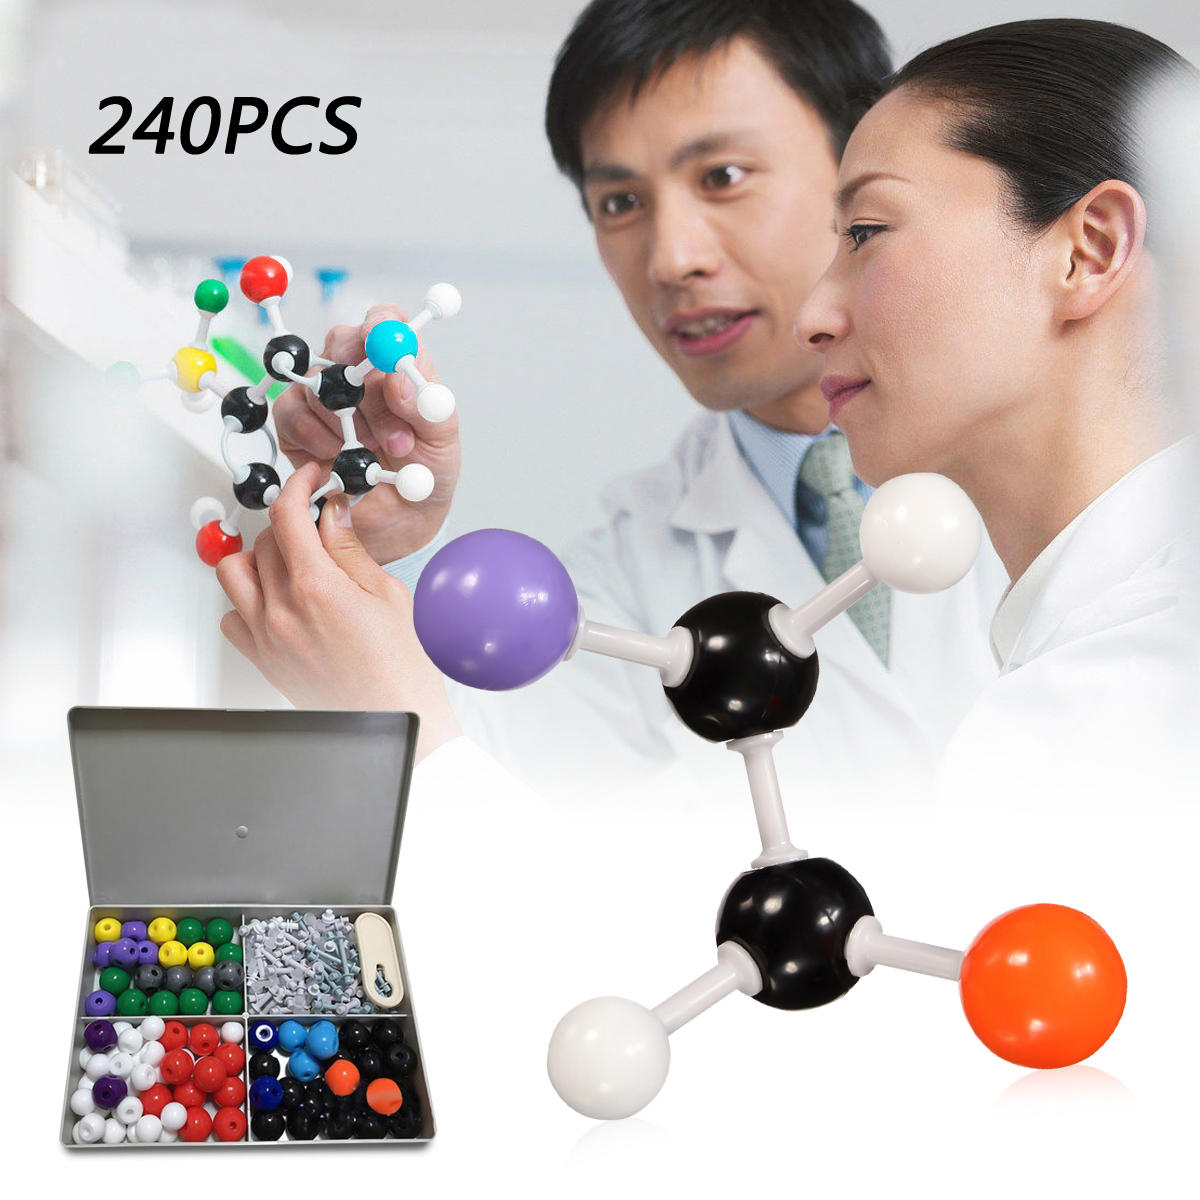 240Pcs Chemistry Molecular Molecules Model Kit General and Organic Chemistry Atom Bonds Student Set For School Lab Teaching molecular structure model set for chemistry teacher dls 23540 chemical crystal models inorganic organic molecules free shipping